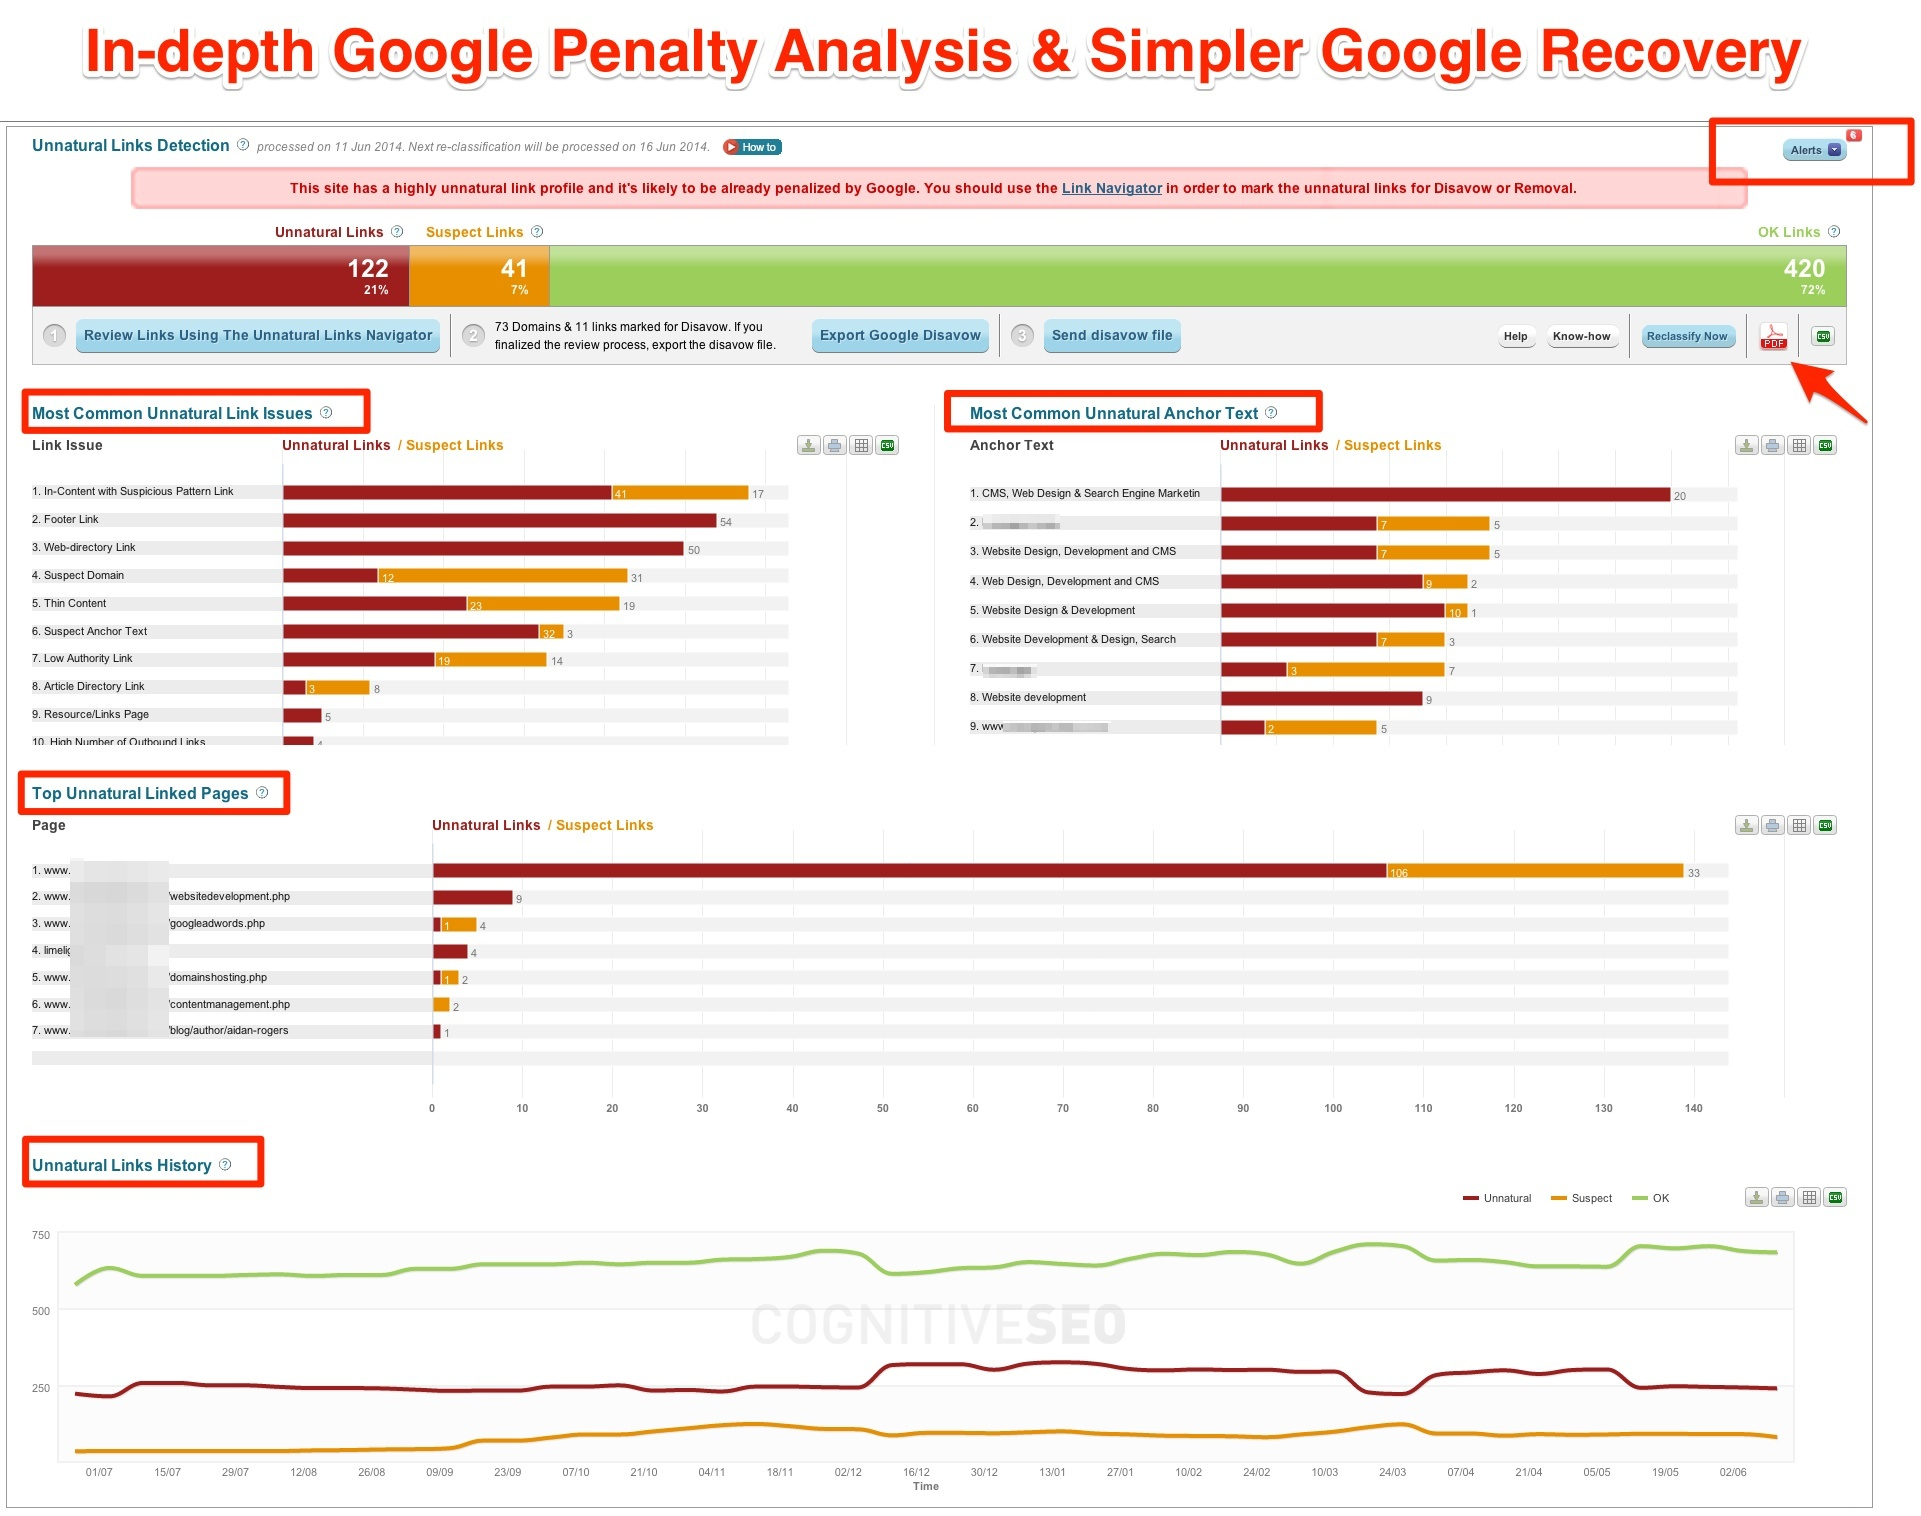 In-depth Google Penguin 3.0 Penalty Analysis and Recovery